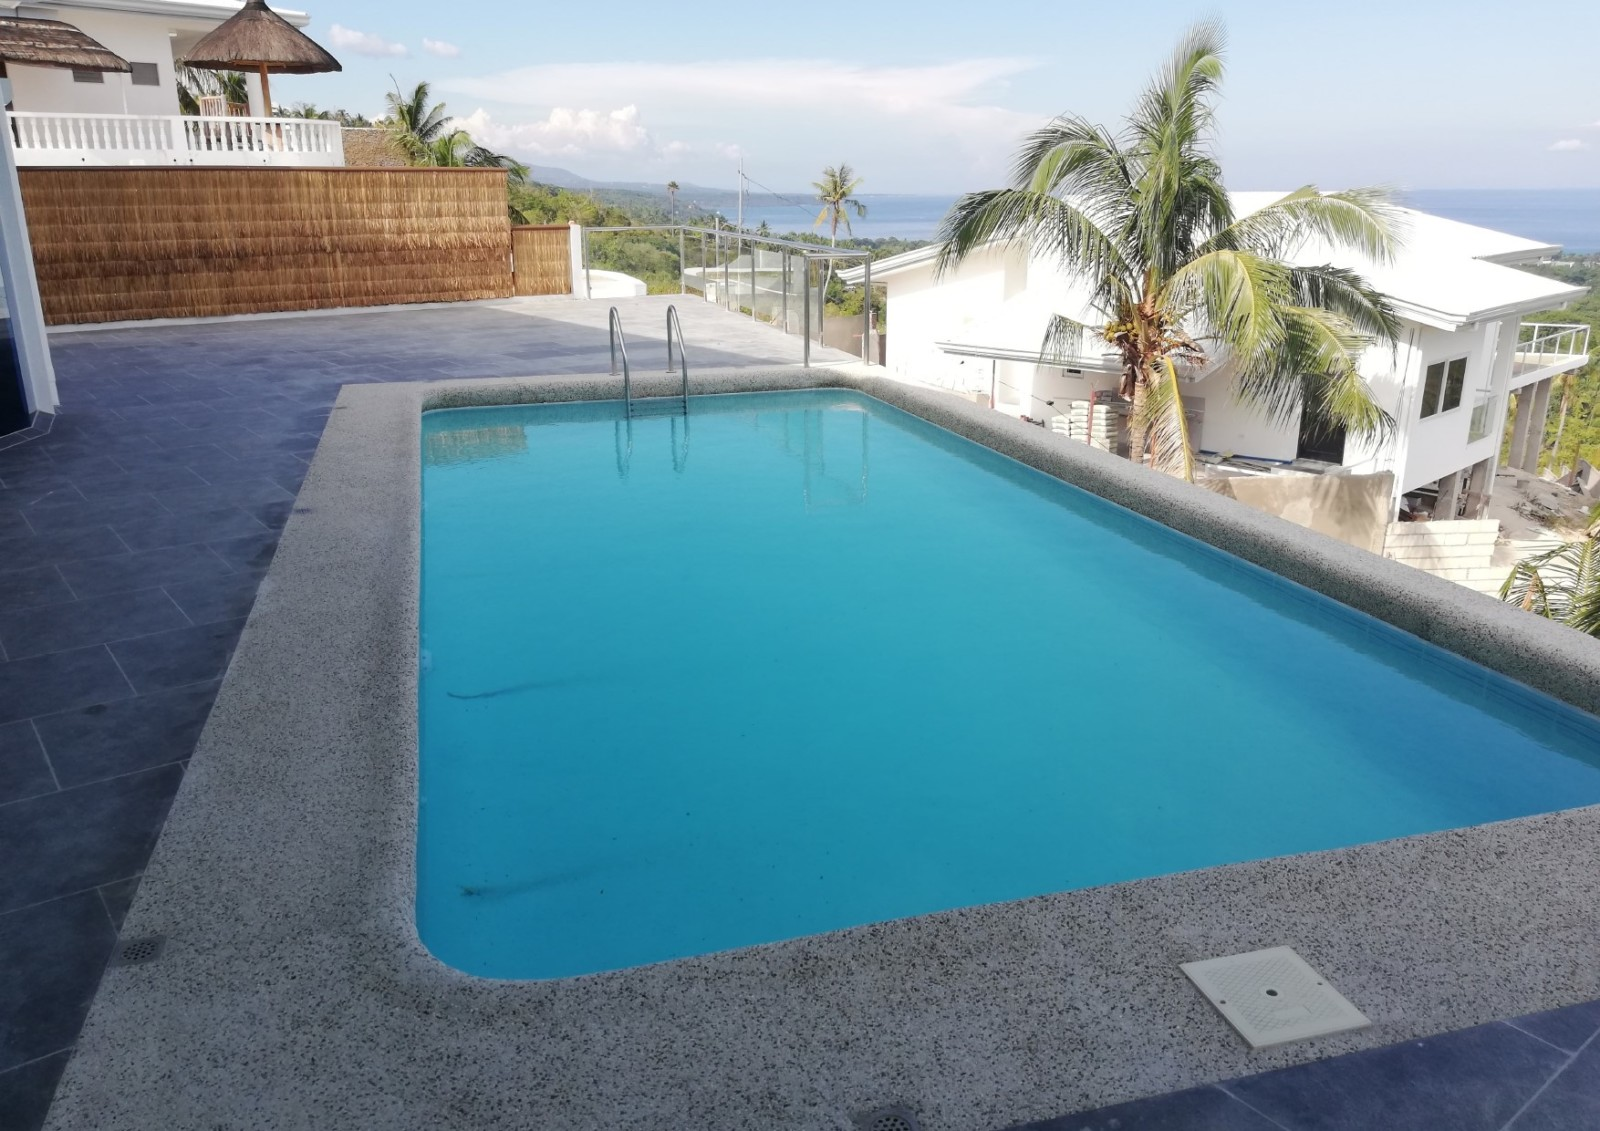 HOUSE AND LOT FOR SALE WITH POOL AND GUEST HOUSE